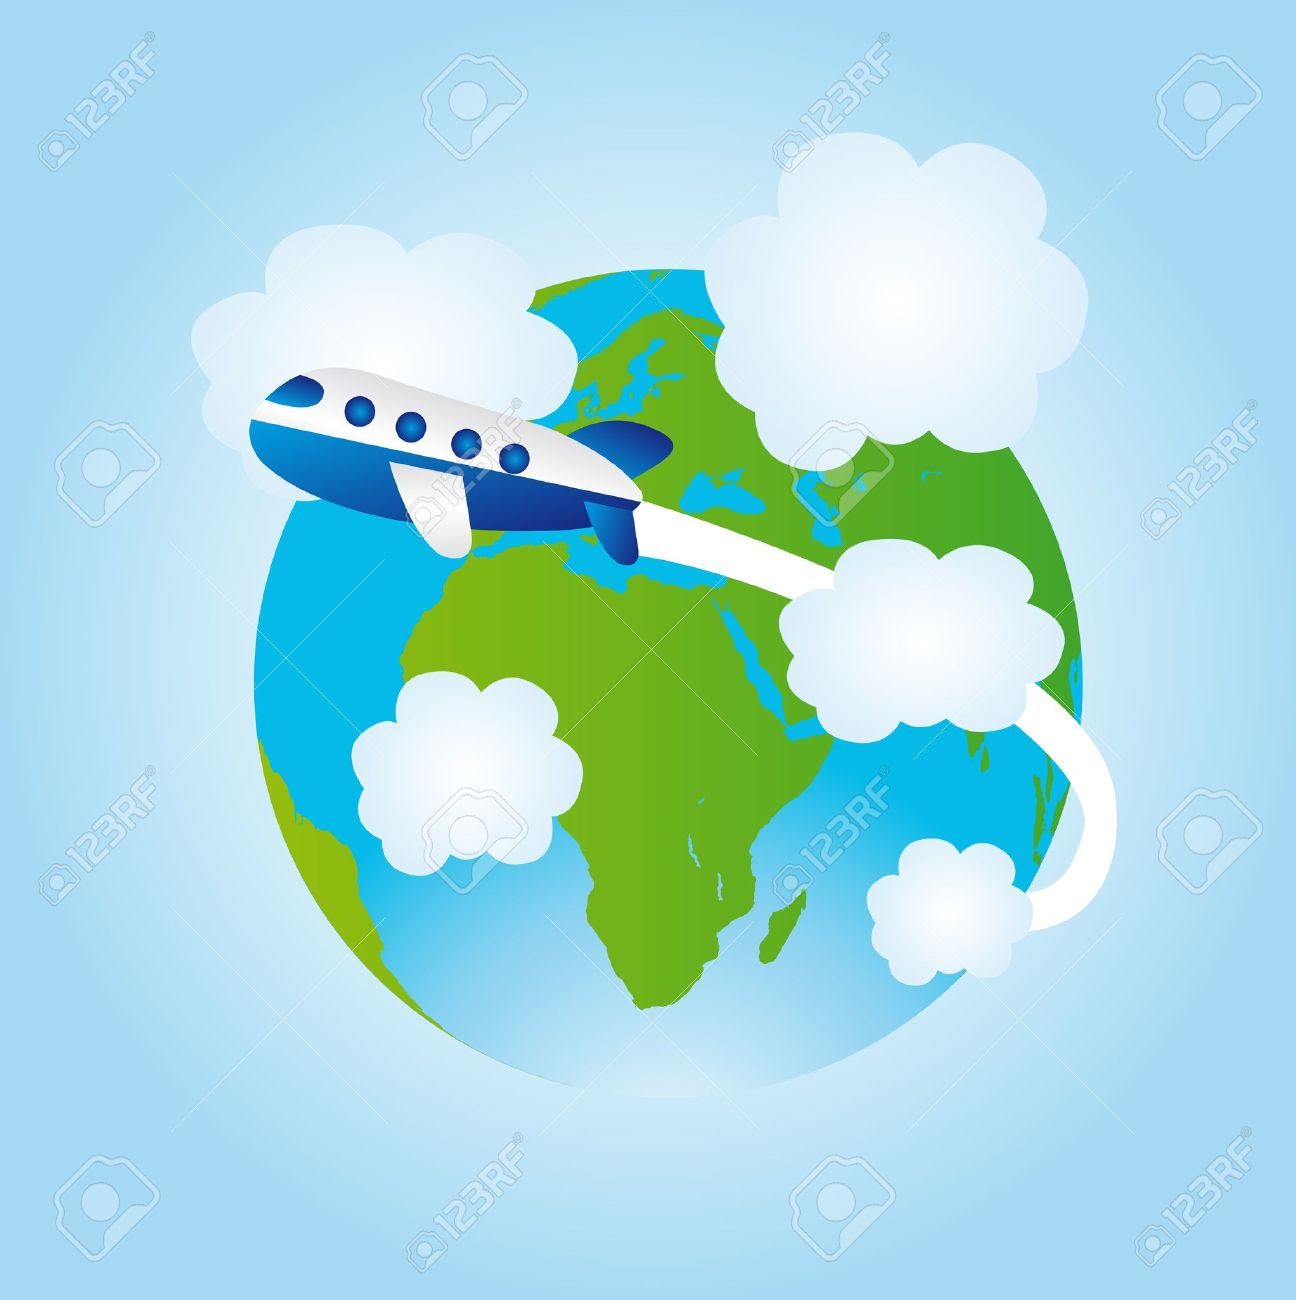 Travel Around The World Clipart Airplane Earth Icon Image.